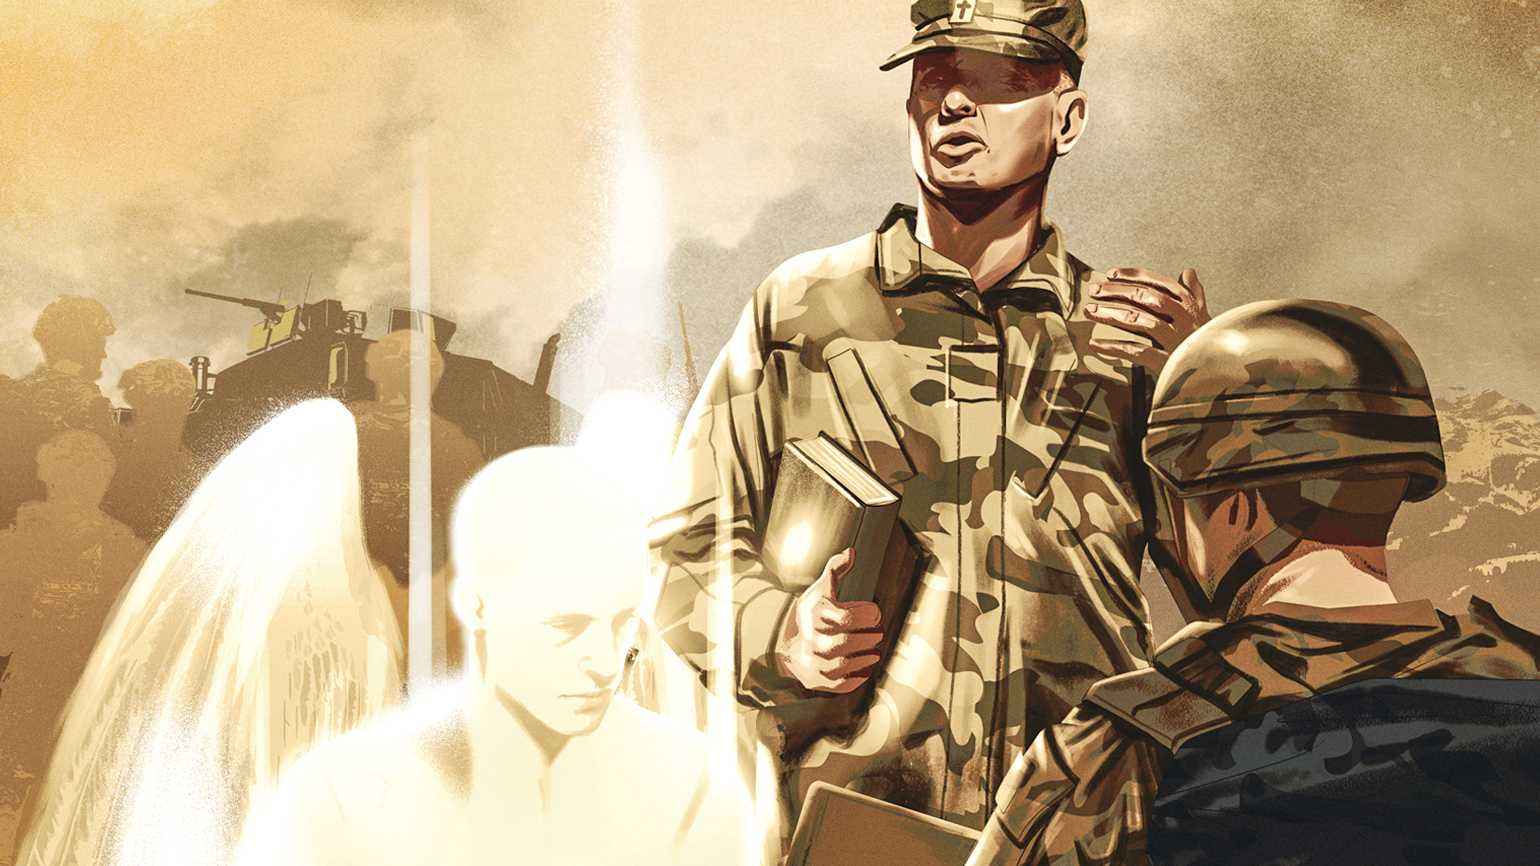 Military men in conversation with a glowing angel in their midst; Illustration by Jonathan Bartlett